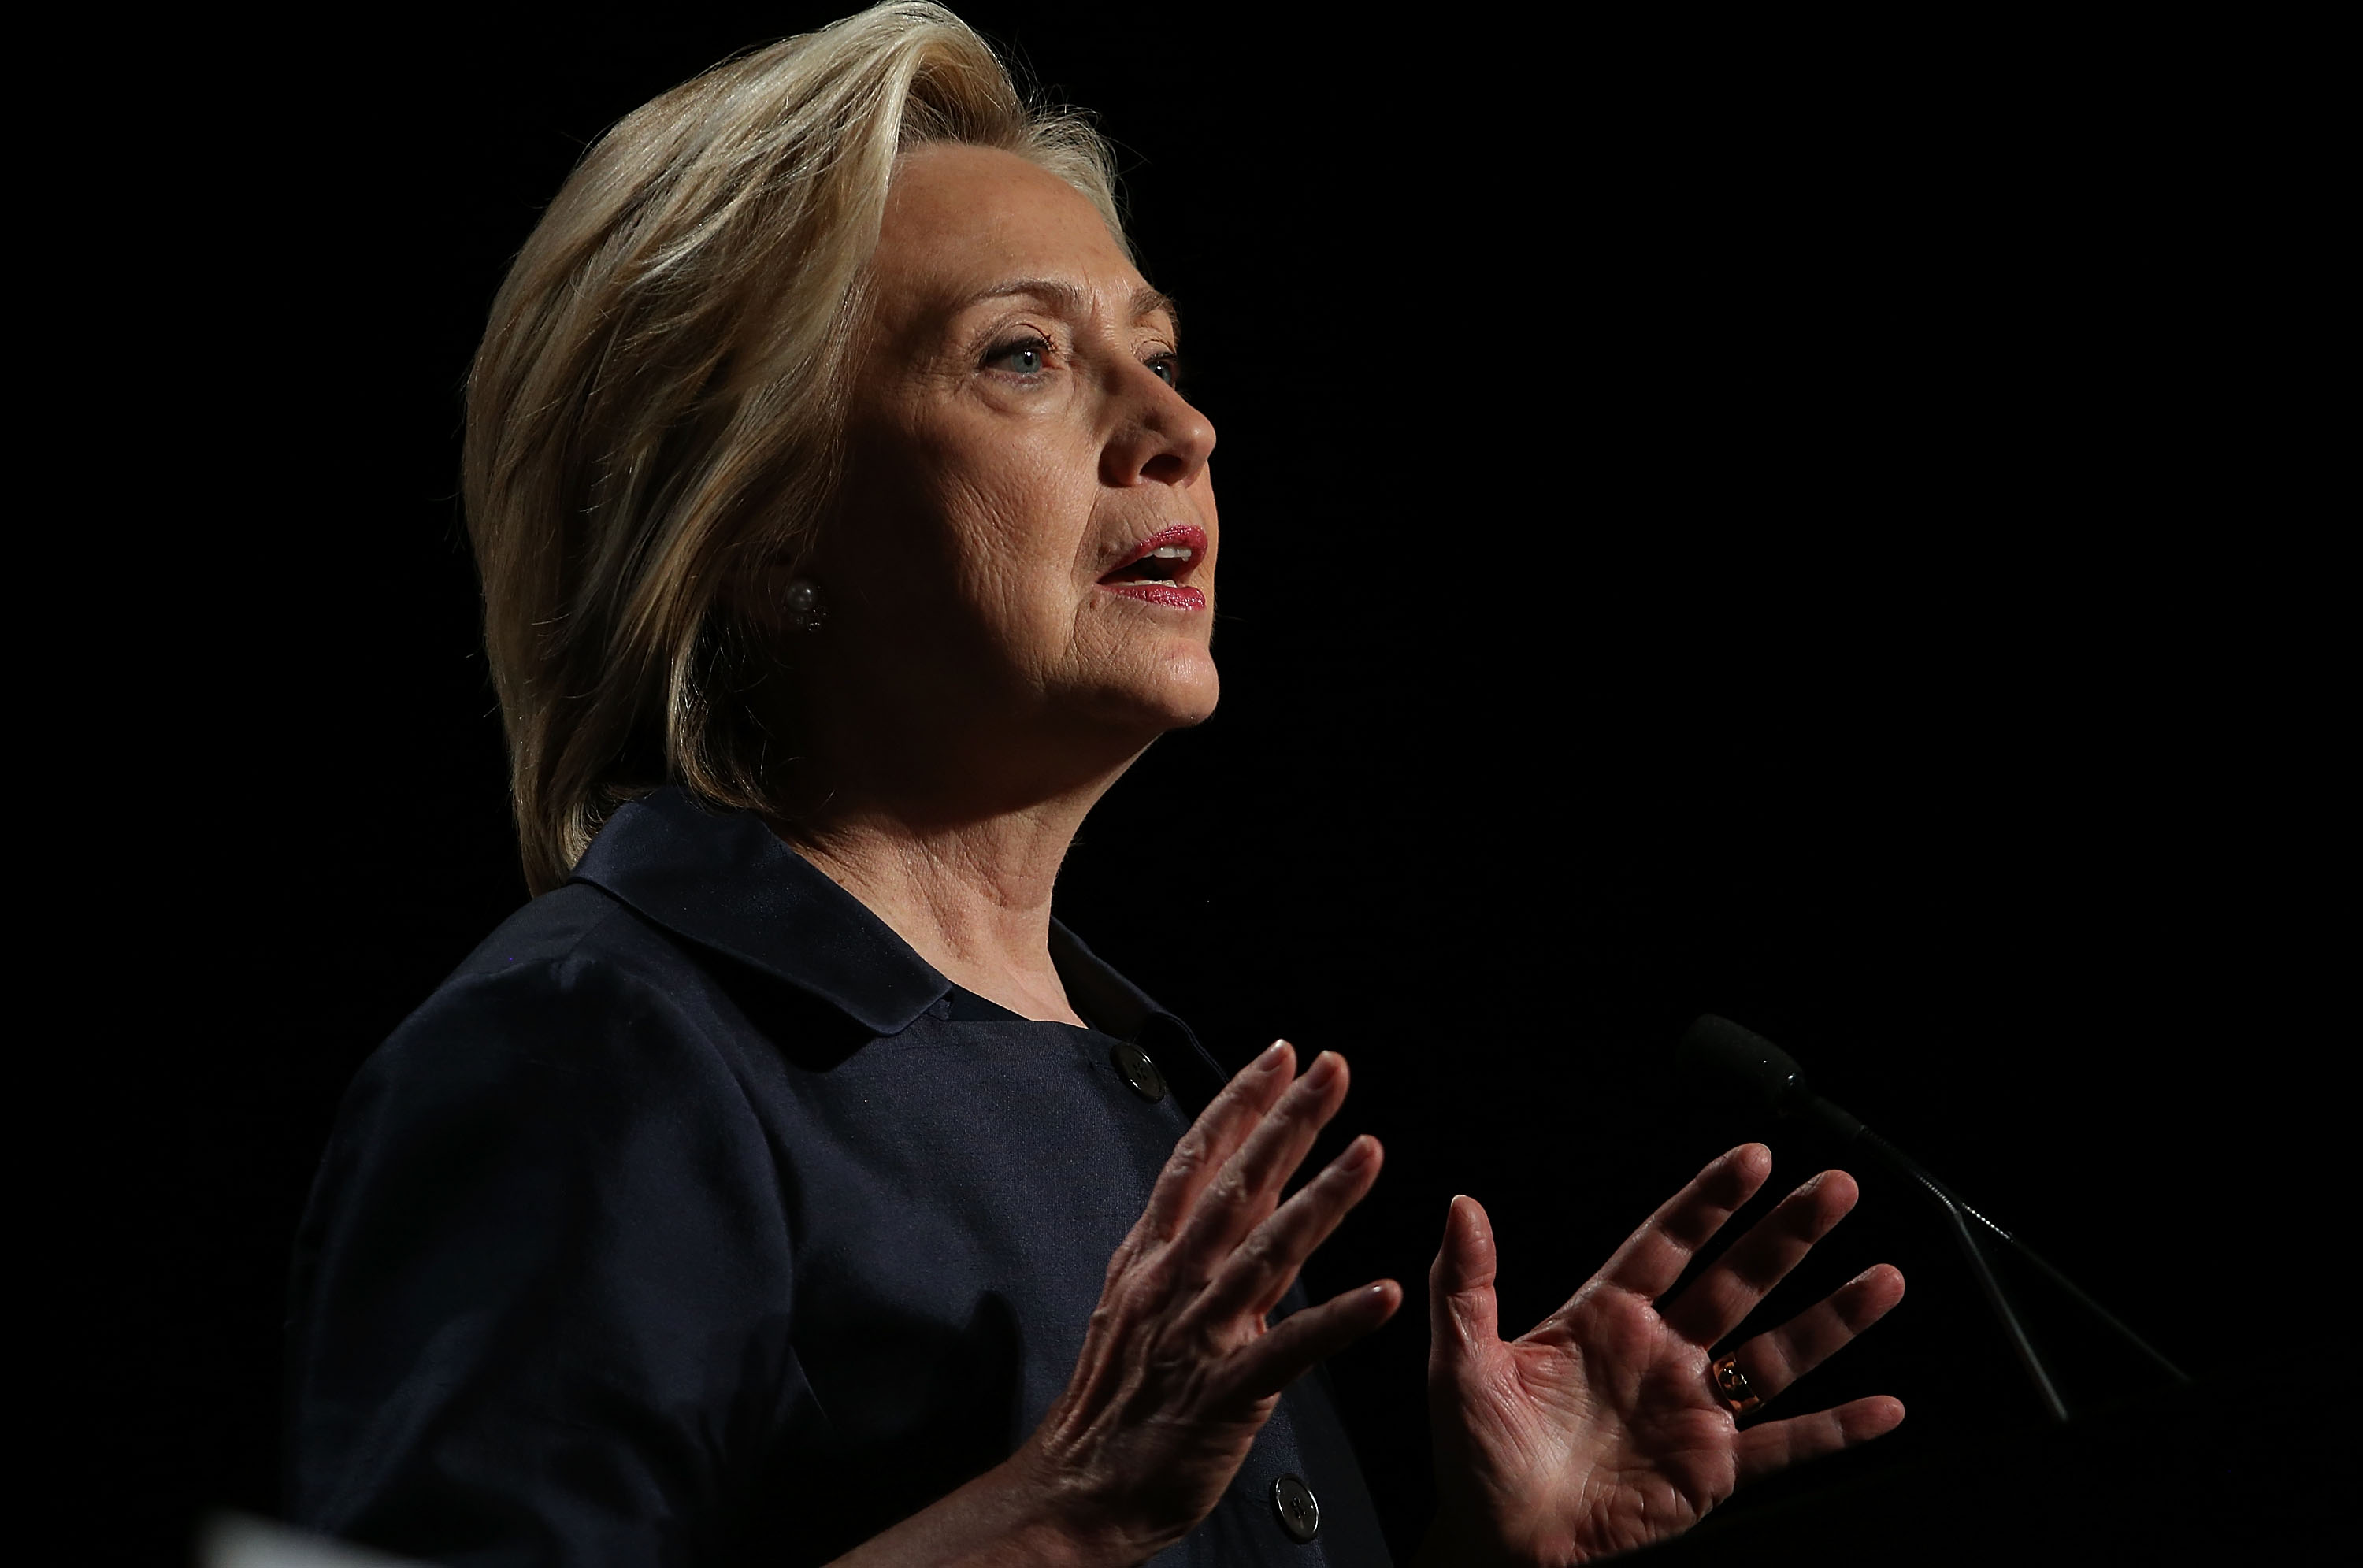 SAN FRANCISCO, CA - JUNE 20: Democratic presidential candidate and former U.S. Secretary of State Hillary Clinton speaks during the 2015 United States Conference of Mayors on June 20, 2015 in San Francisco, California. The 83rd Annual Meeting of the U.S. Conference of Mayors runs through June 22. (Photo by Justin Sullivan/Getty Images)